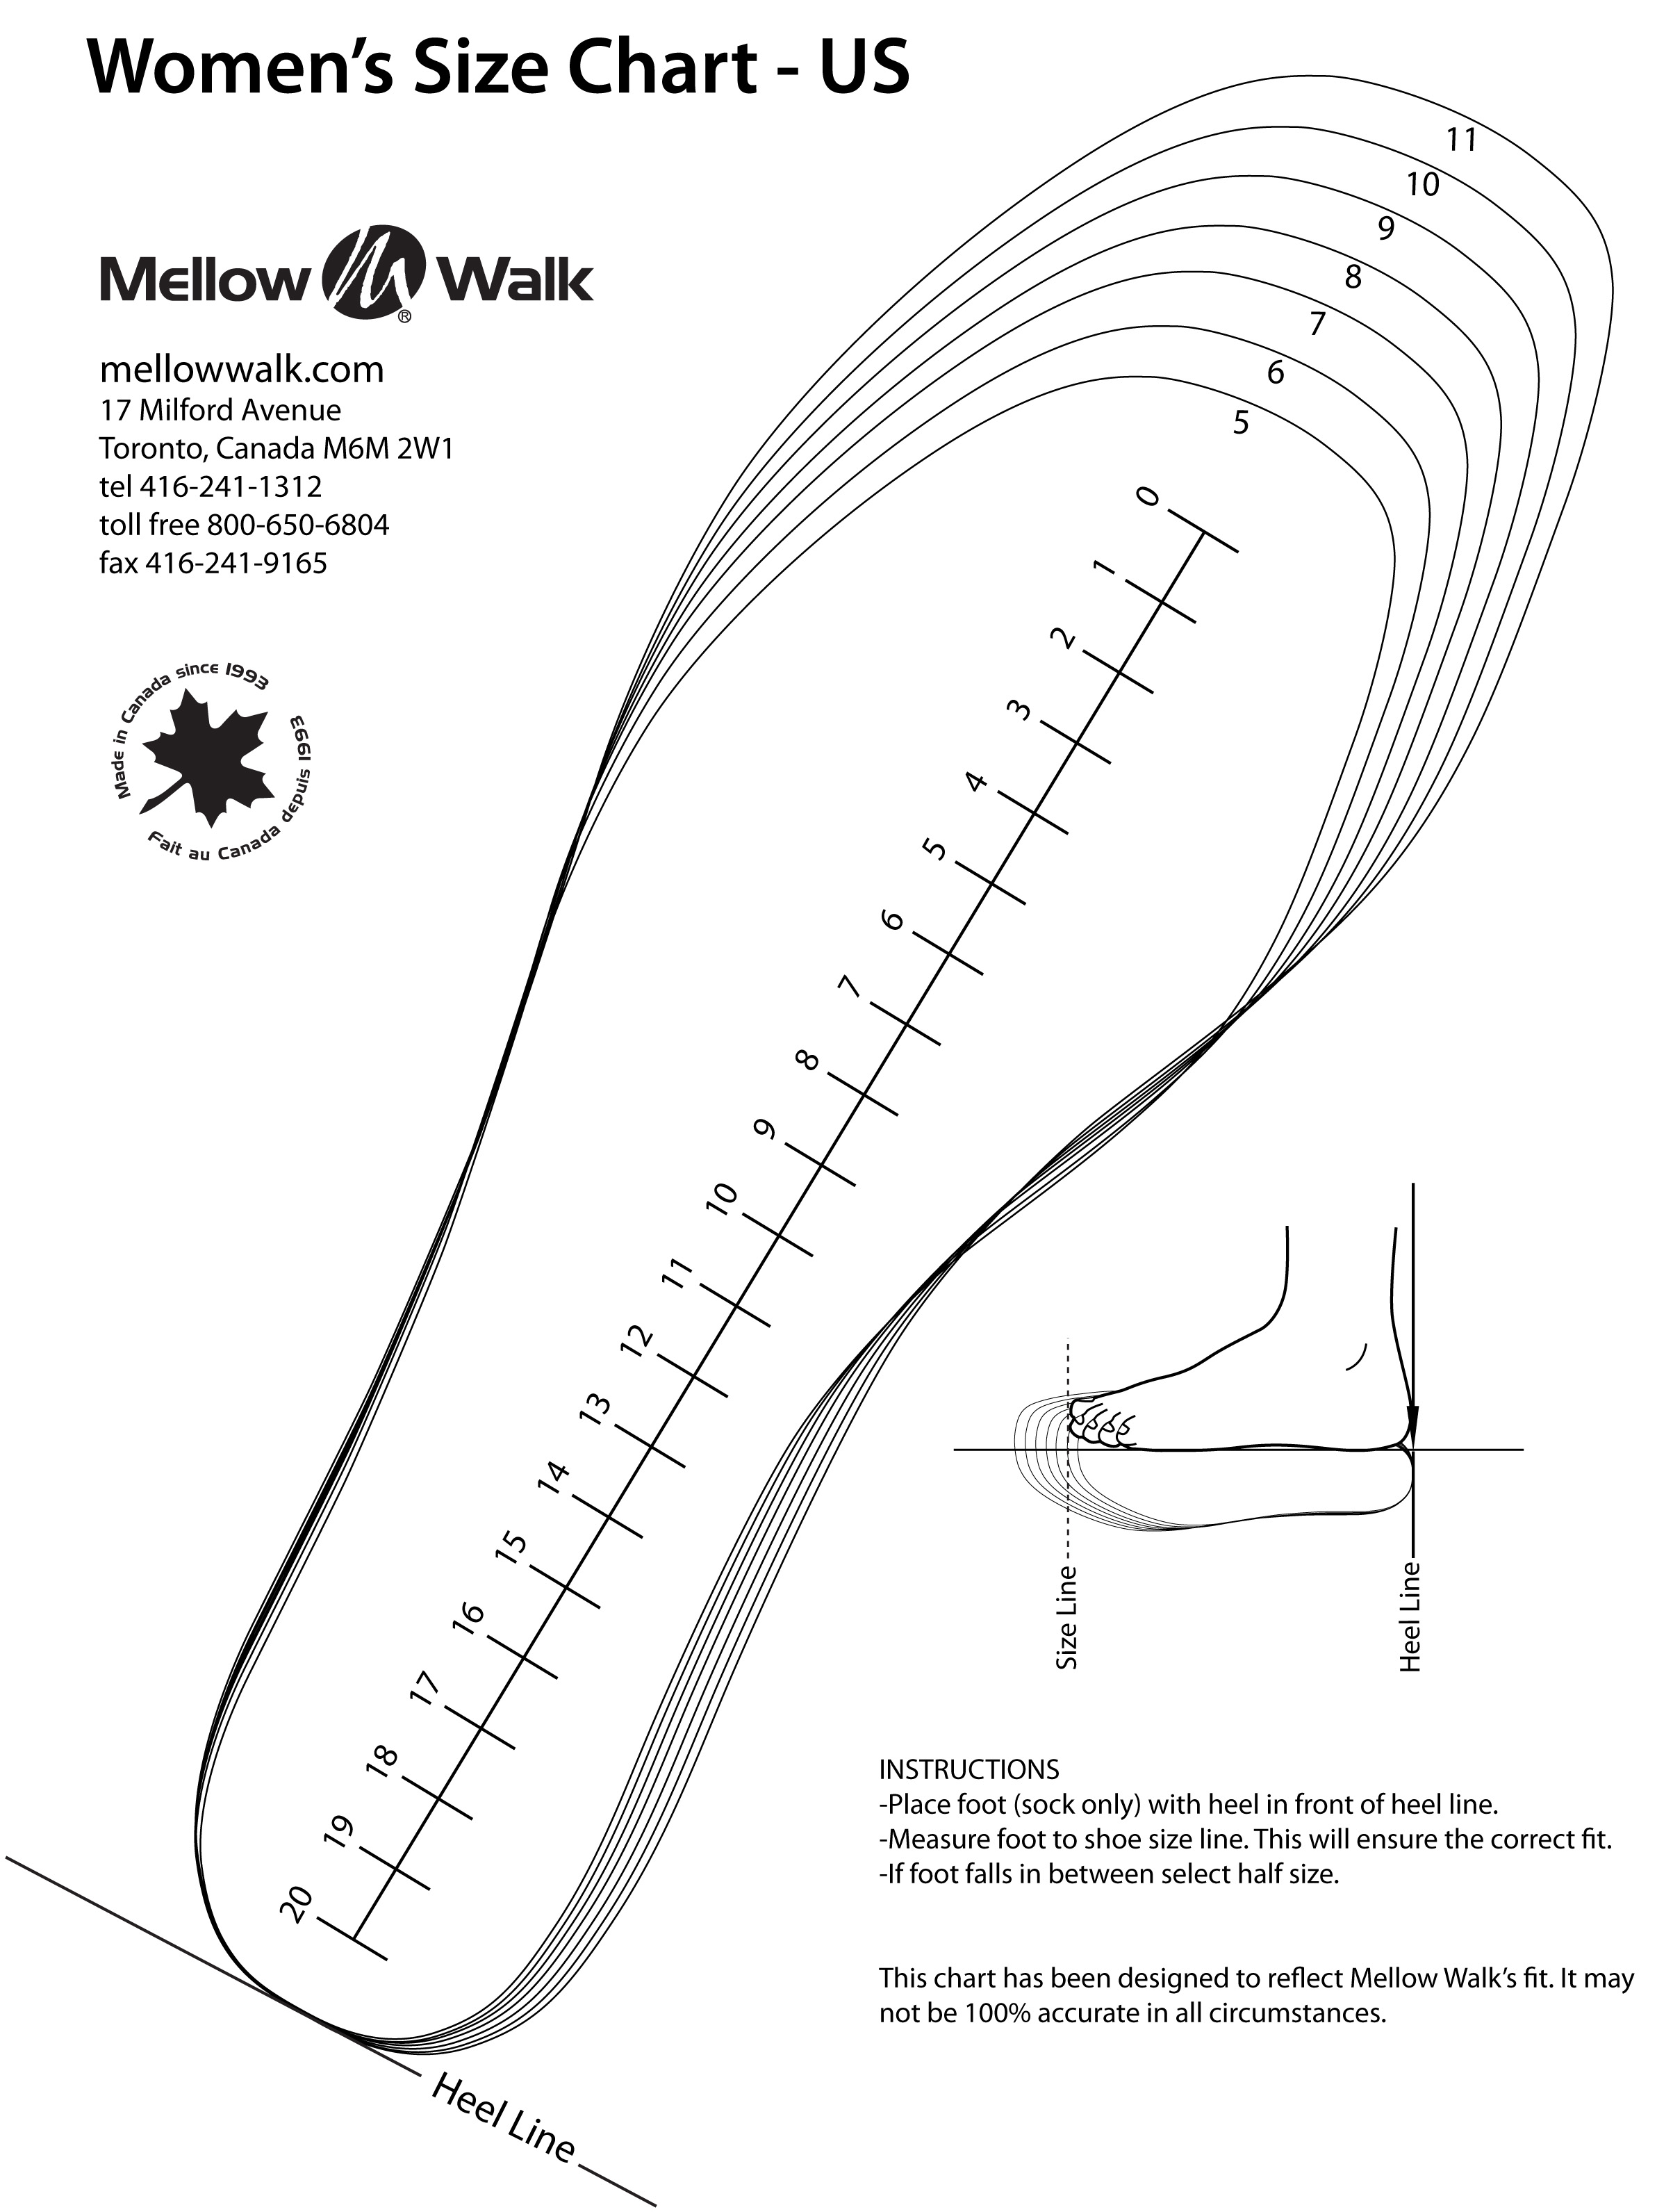 Getting the perfect Mellow Walk fit is as easy as 1, 2, 3 (print) |